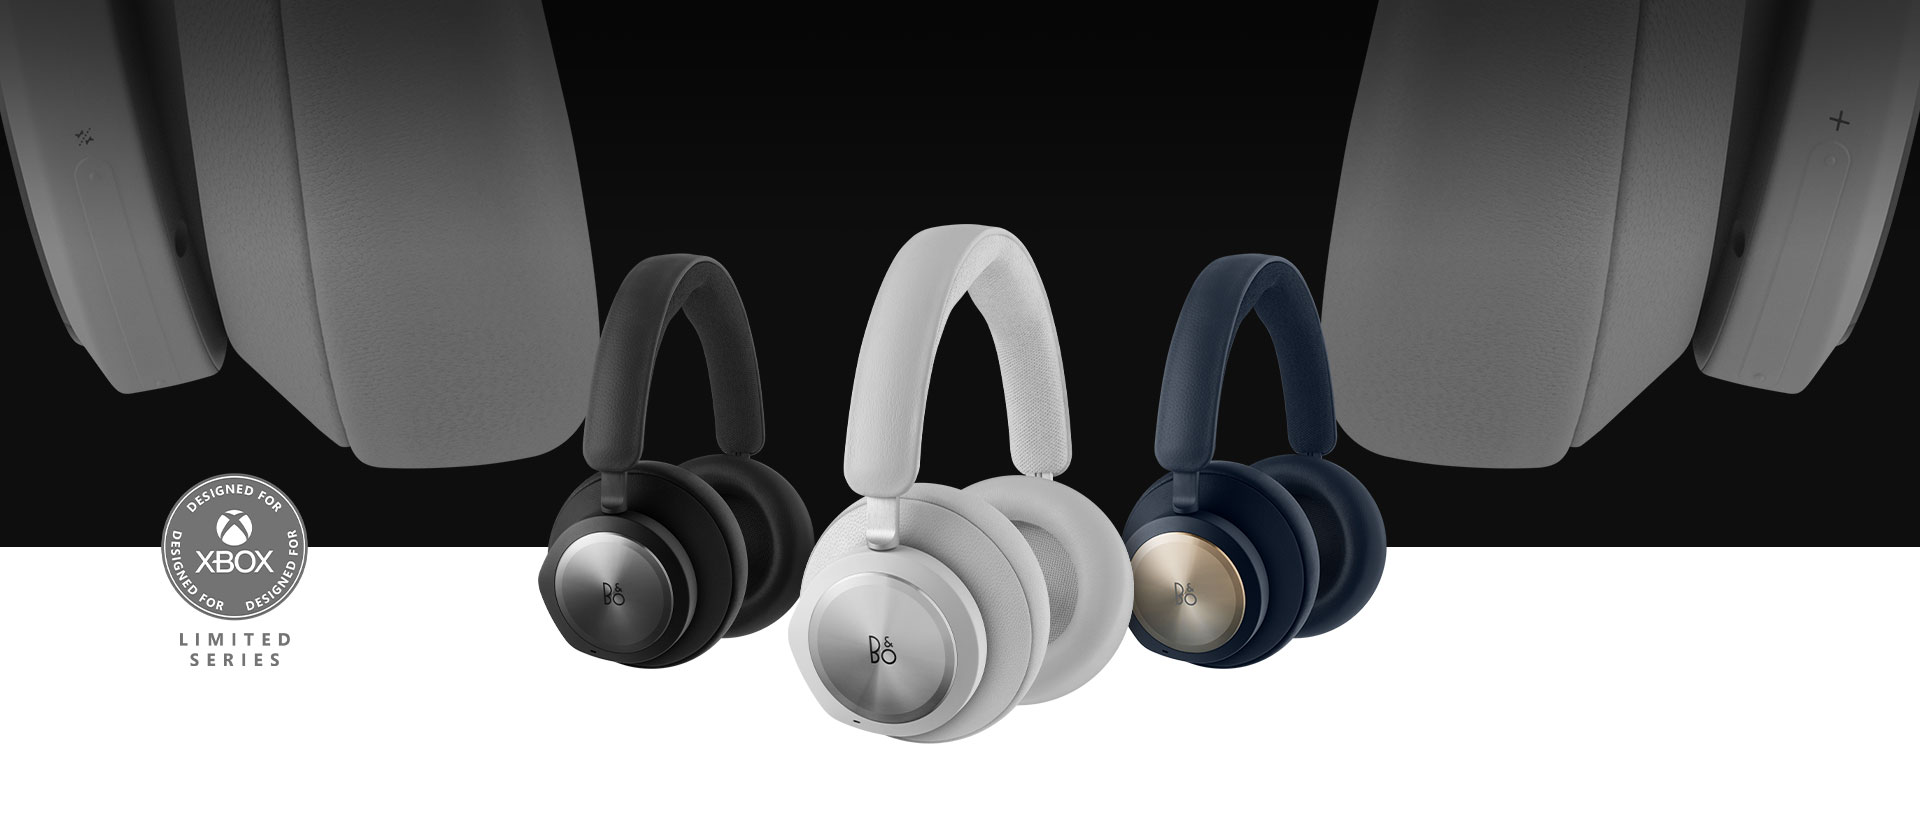 Band and Olufsen grey headset in front with the black and navy headset beside it